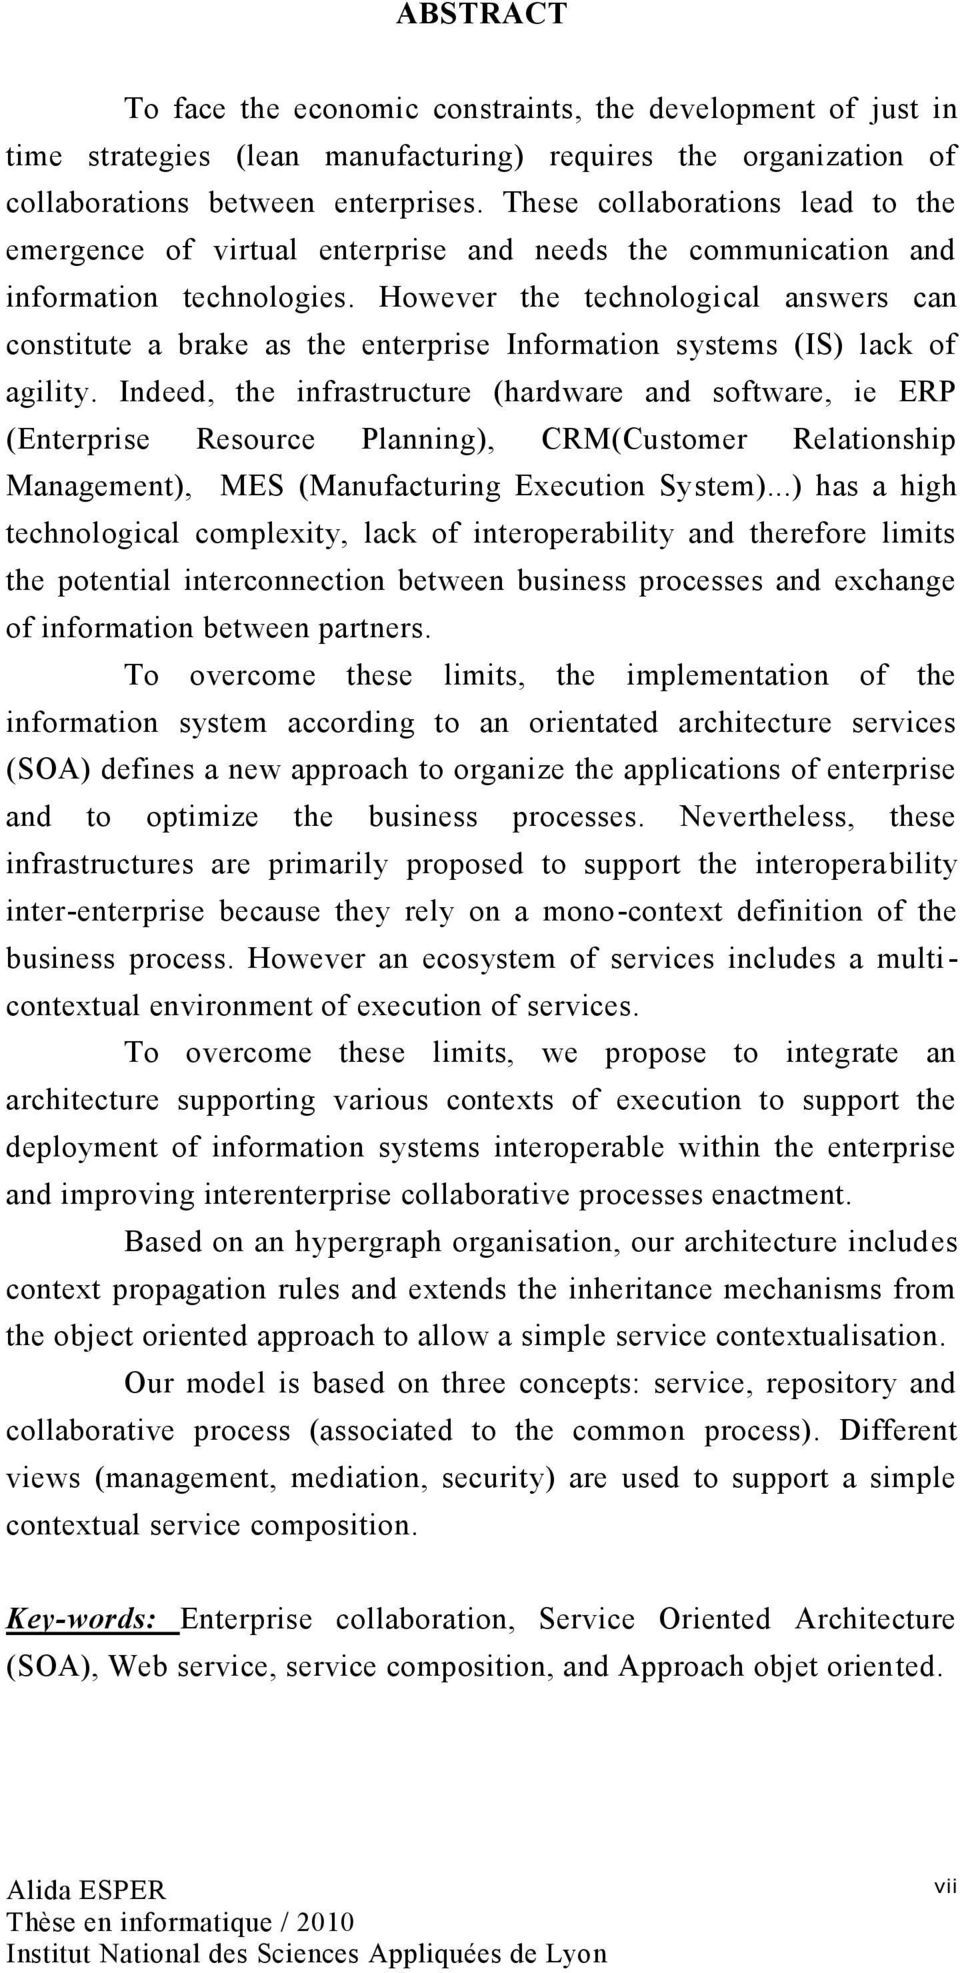 However the technological answers can constitute a brake as the enterprise Information systems (IS) lack of agility.